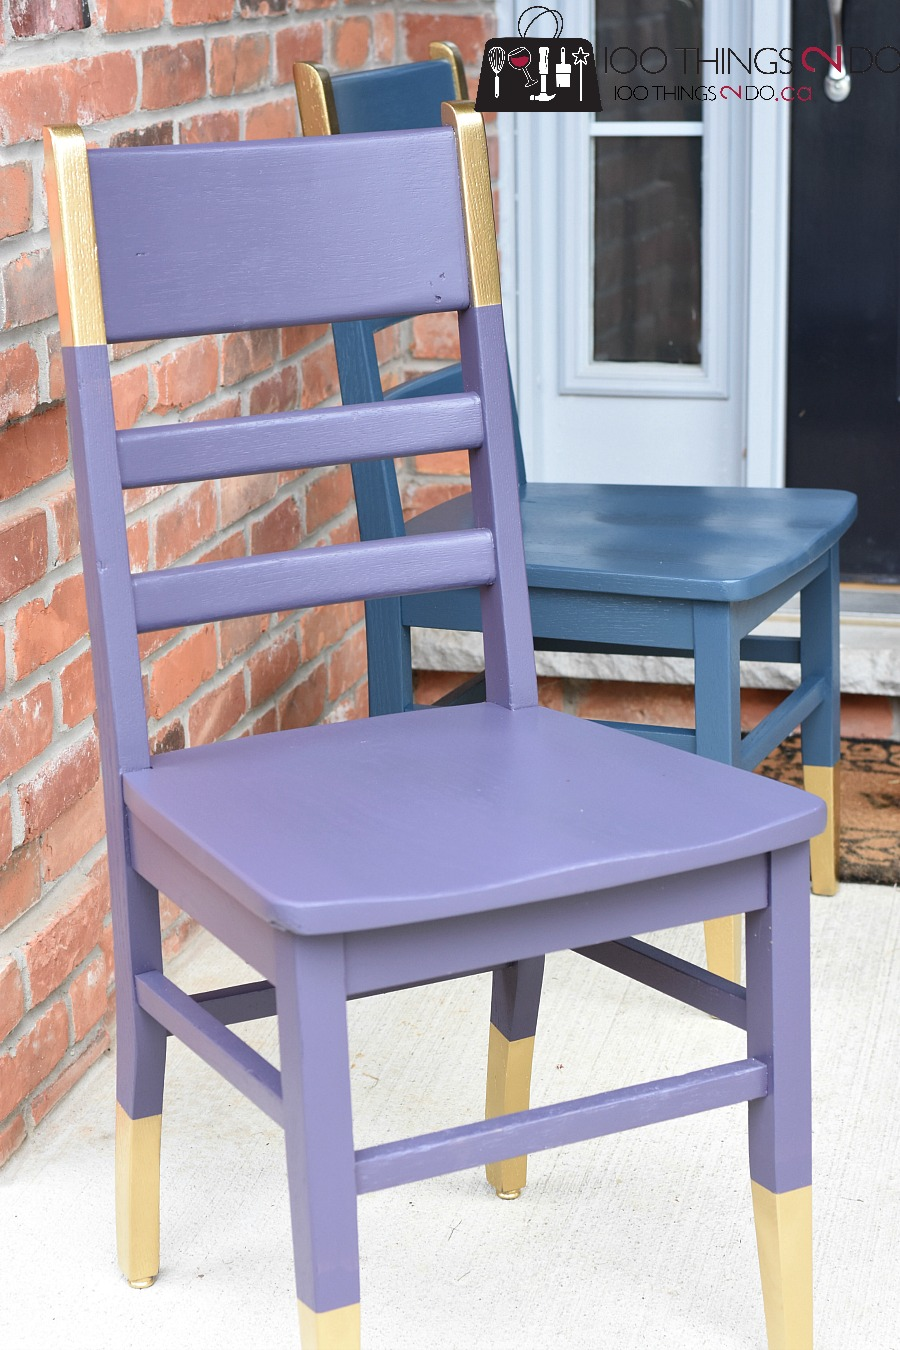 Chair makeover, wood chair, painted chair, refinished chair, gold dip, desk chair